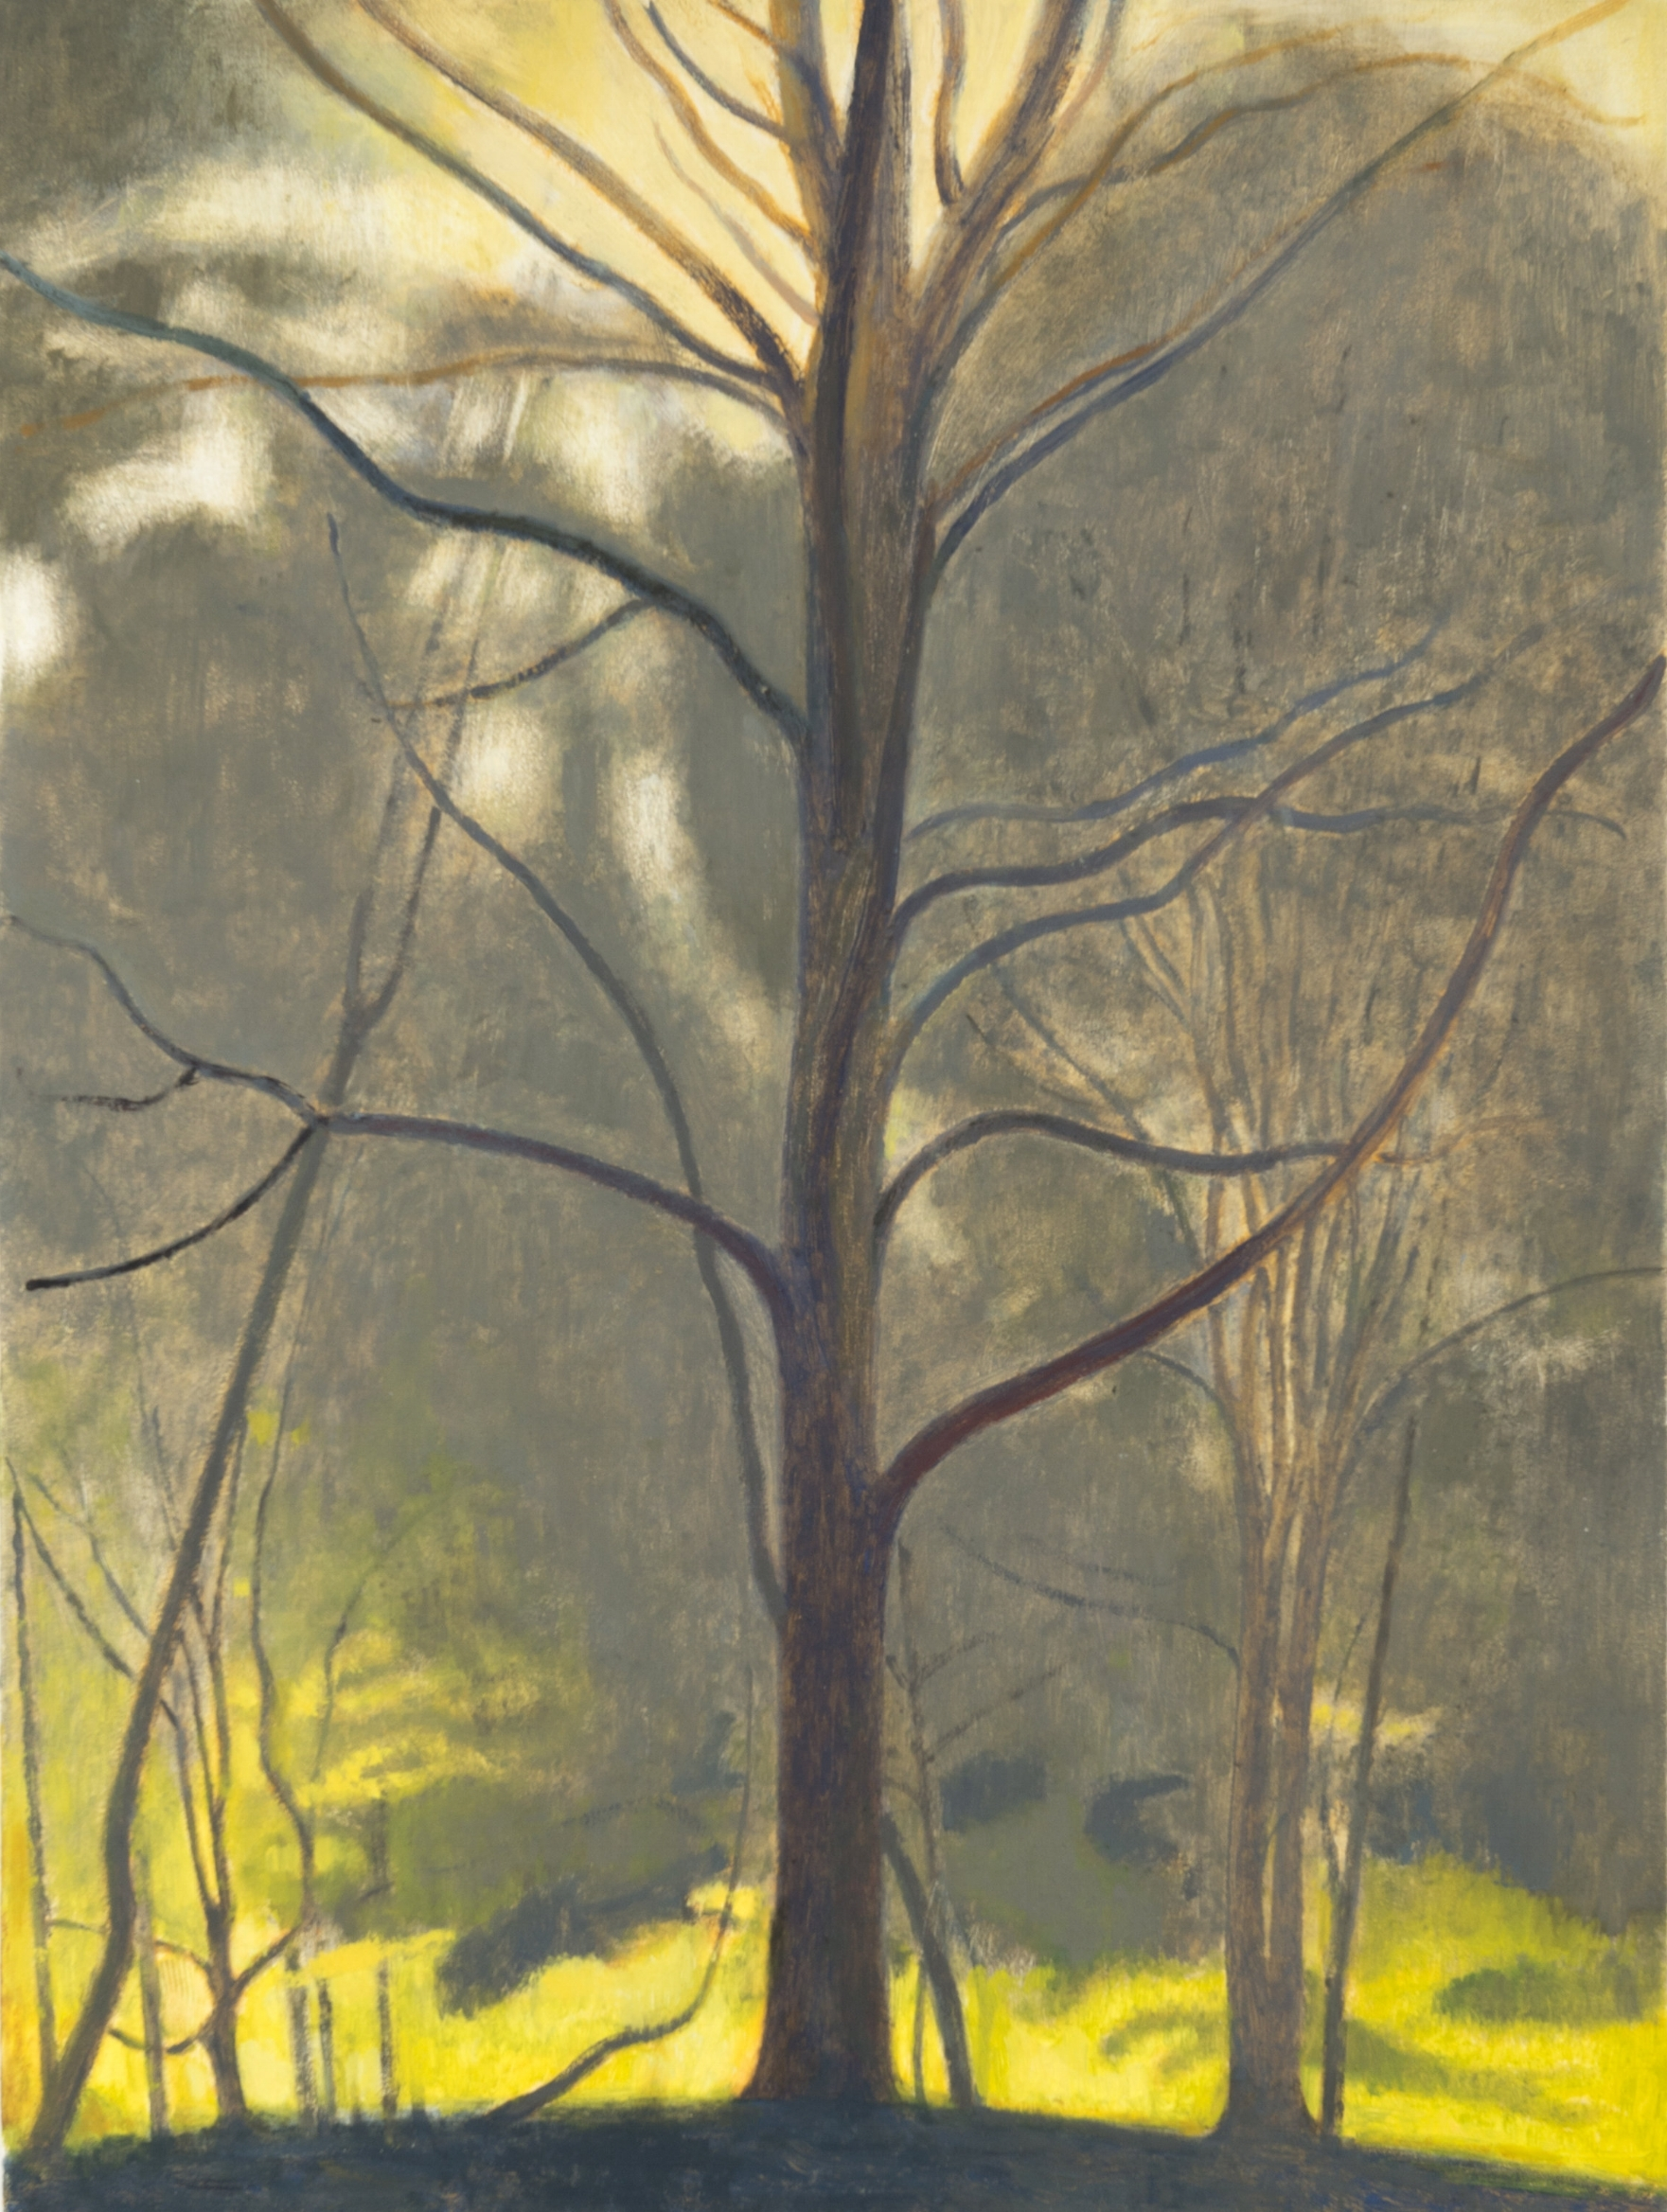 """Tree  , 2017, oil on panel, 12 x 9 inches,      Upland     January 6 - February 10, 2018    Opening Reception - Saturday, January 6, 3-6 pm      Elizabeth Harris Gallery    529 West 20th Street    New York, NY 10011    212.463.9666      press release   Elizabeth Harris Gallery is pleased to present Upland, an exhibition of new work by Ron Milewicz. This will be his fourth solo exhibition with the gallery. It will feature paintings and drawings based on the rural landscape of upstate New York.  For two years Milewicz made drawings in the woods, approaching nature simply and directly with only pencil and paper. In these intimately scaled portrayals of trees, meadows, ponds, and skies, the silvery graphite is seemingly soaked into the soft cotton paper. Critic David Ebony writes in his exhibition essay: """"Milewicz trees are no ordinary specimens . . . the trees appear as spectral presences. Nurtured by ethereal light, crystalline air, and vaporous clouds of moisture—conveyed by finely nuanced tonal shifts—these ancient, ancestral trees possess firm roots and an insistent verticality."""" Milewicz's absorption into nature is evident, and the drawings are suffused with solitude.  Milewicz began making paintings of his drawings of landscapes. Relying on memories that are as much emotional as visual, Milewicz's paintings are faithful to both interior and exterior experience. They regard nature as a spiritual wellspring, a view Milewicz shares with artists ranging from the Chinese scholar-painter to the American Luminist. His works assert the overwhelming truth of Nature's elemental and mystical power. Reverence, however, is not confused with nostalgia. Conscious of the contemporary existential threat to Nature, Milewicz's depictions of landscape can be seen as elegies for the landscape itself. They present Nature's force along with its vulnerability, silently marveling at the central miracle of being while admitting the miraculous fact of inevitable dissolution.  At the core o"""